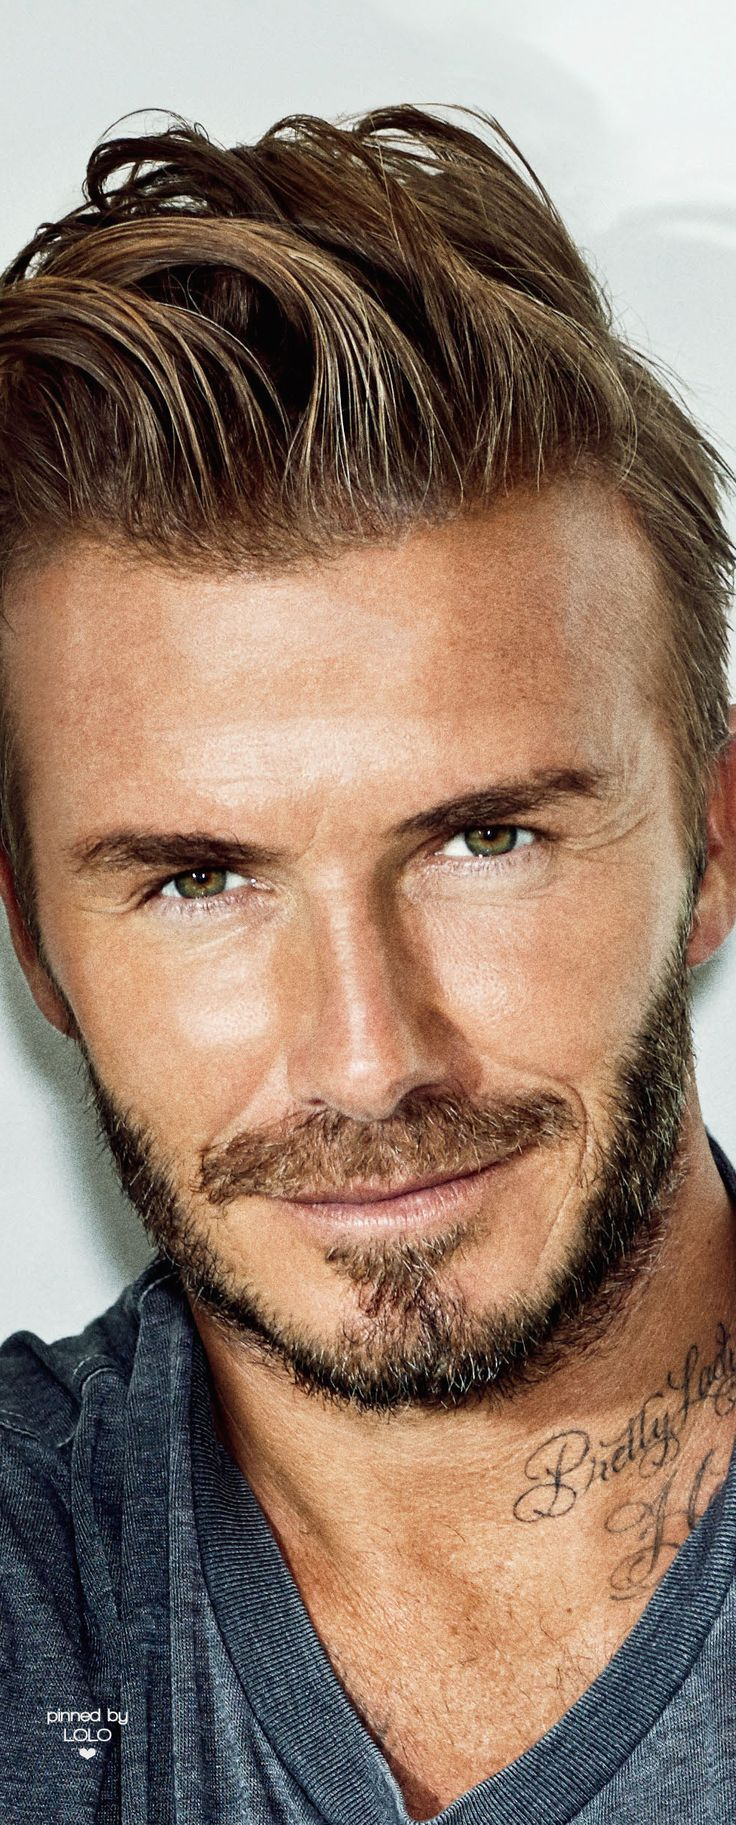 David Beckham People Sexiest Man Alive by Marc Hom | LOLO❤︎